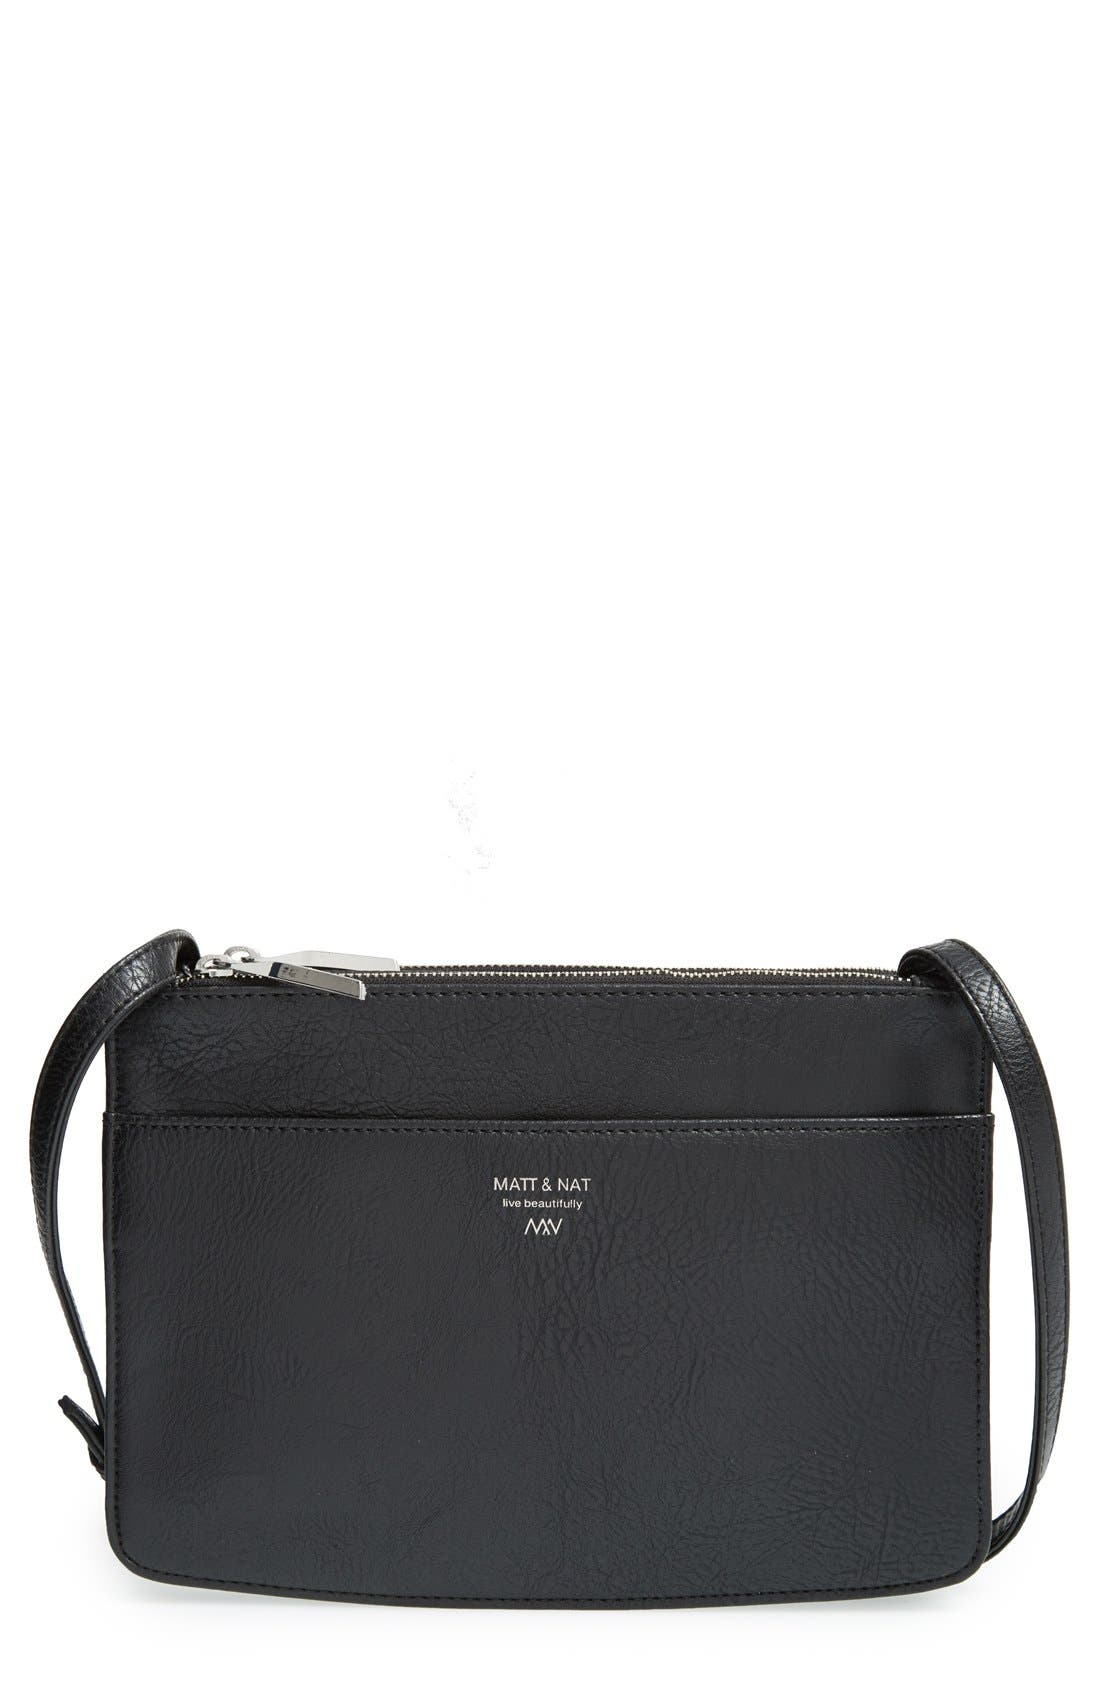 Alternate Image 1 Selected - Matt & Nat 'Gil' Vegan Leather Crossbody Bag